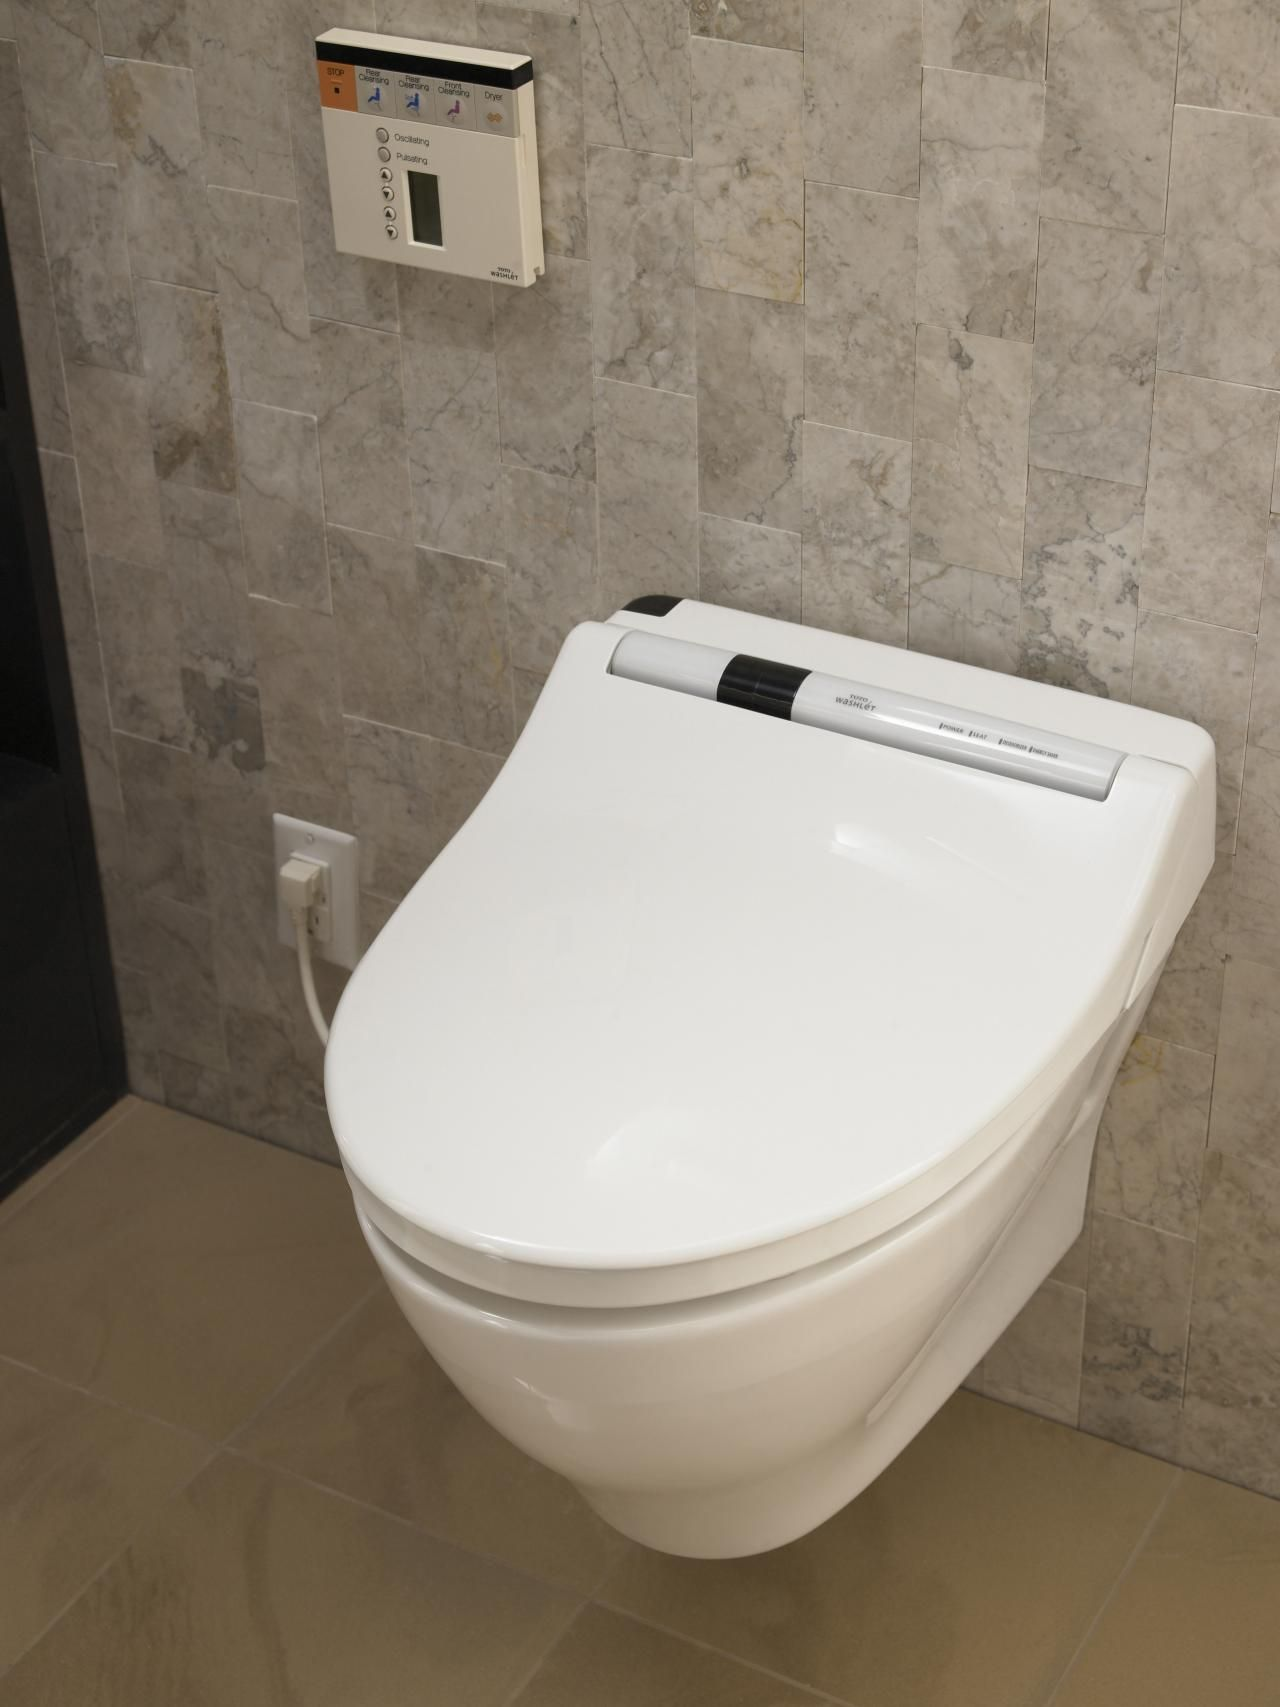 Choose The Right Toilet For Your Bathroom With Images Toto Toilet Bathroom Toilets Luxury Hotel Bathroom